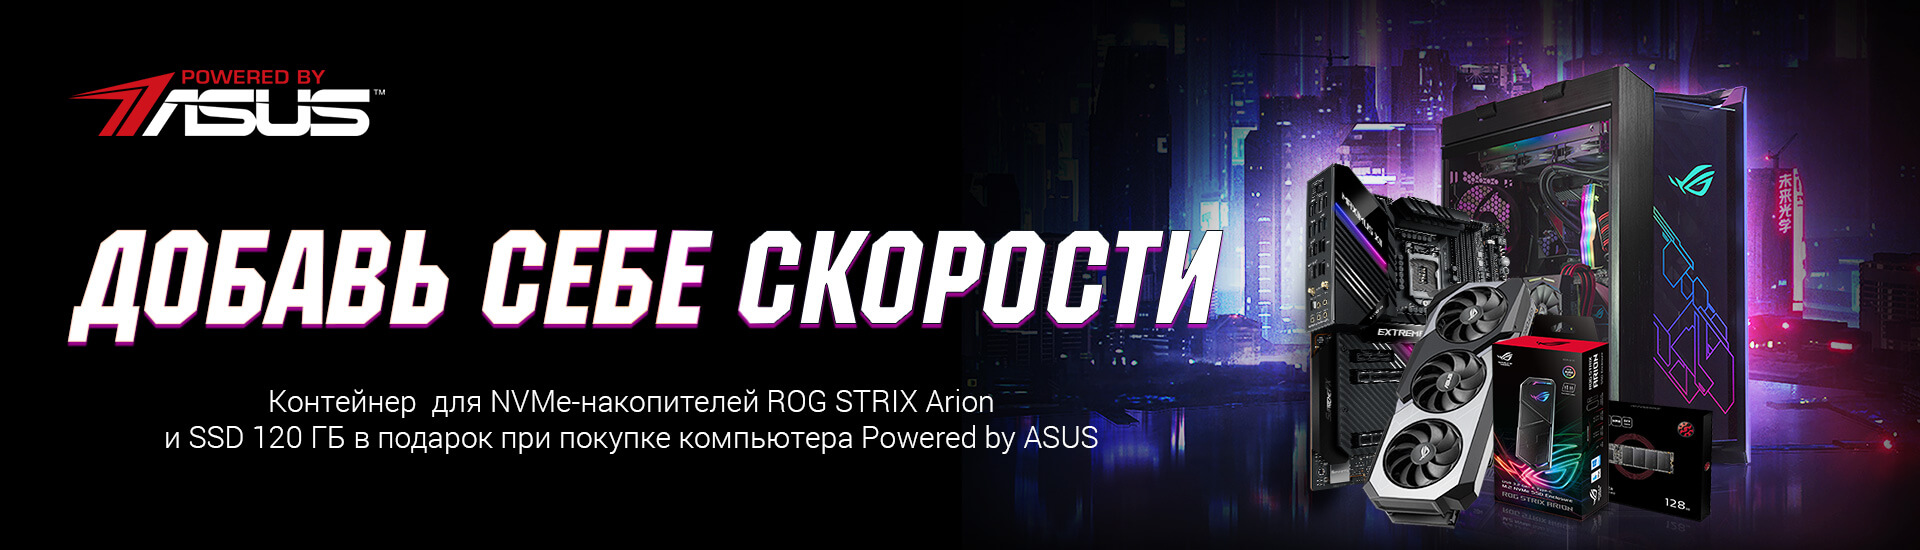 Контейнер ROG Strix Arion и SSD на 120 ГБ в подарок